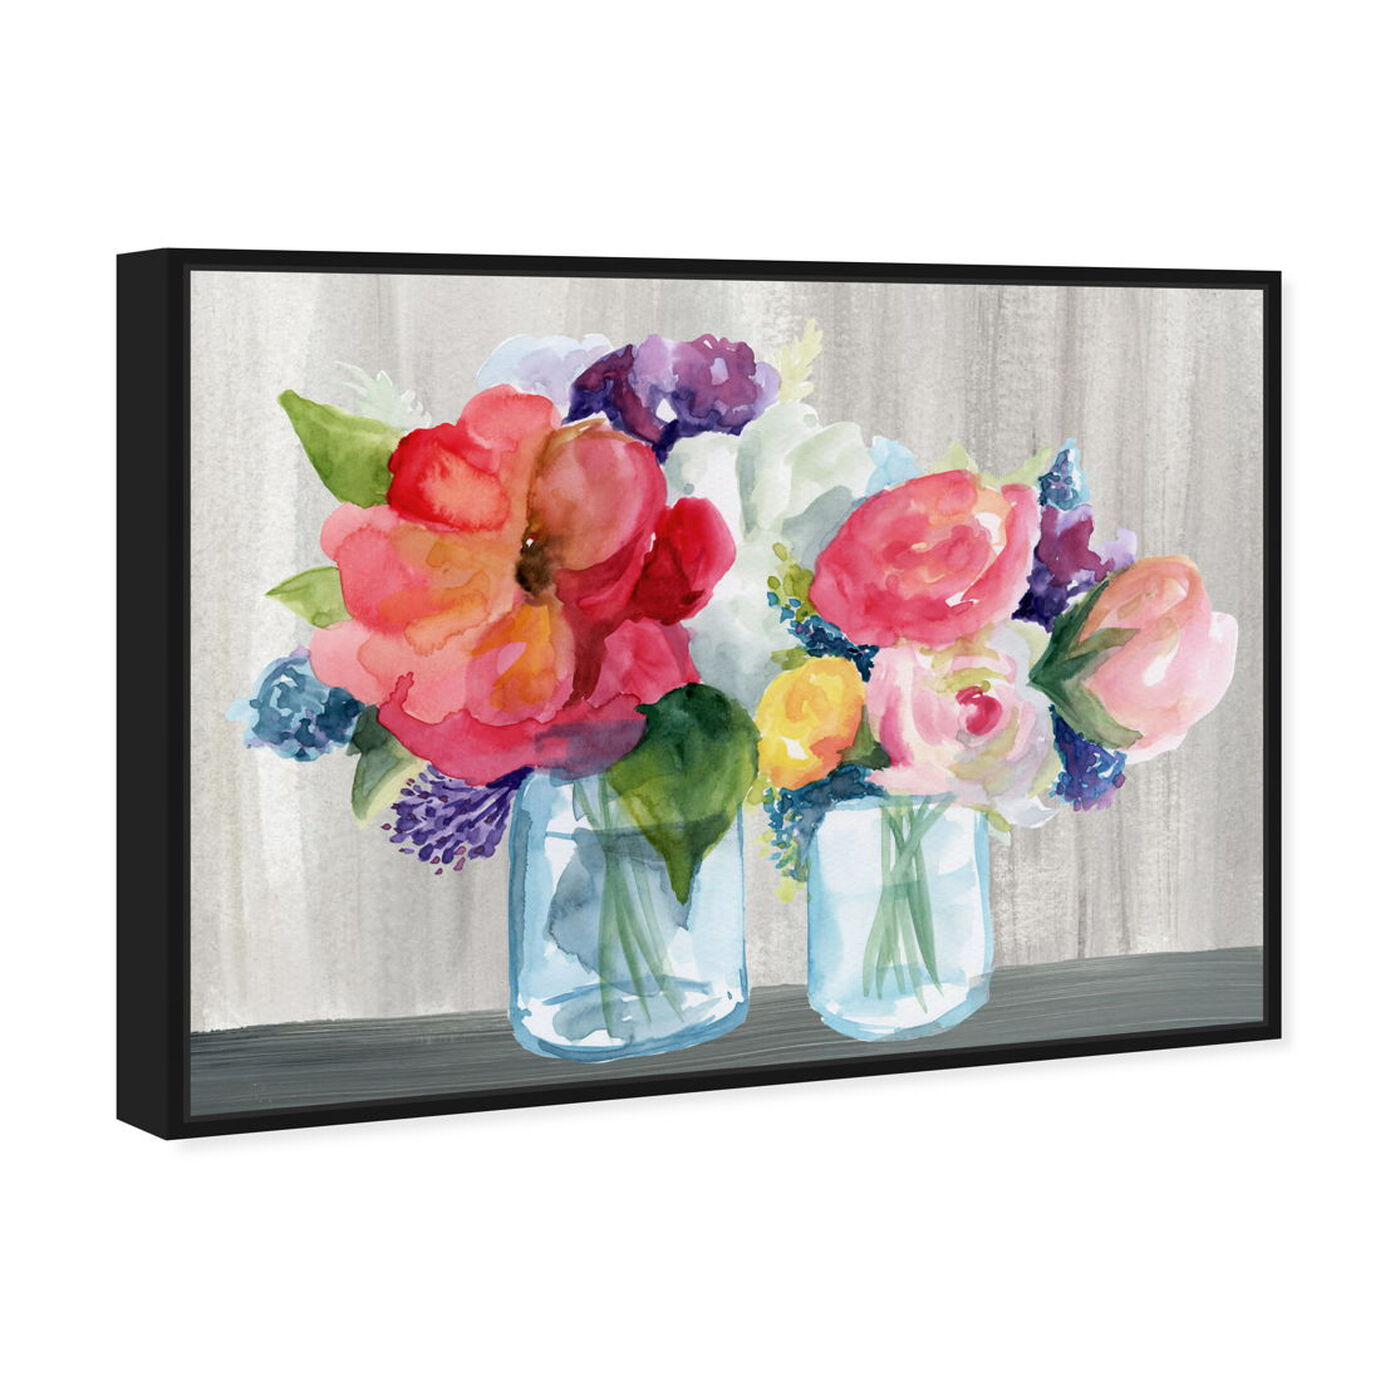 Angled view of Flower Shop featuring floral and botanical and florals art.